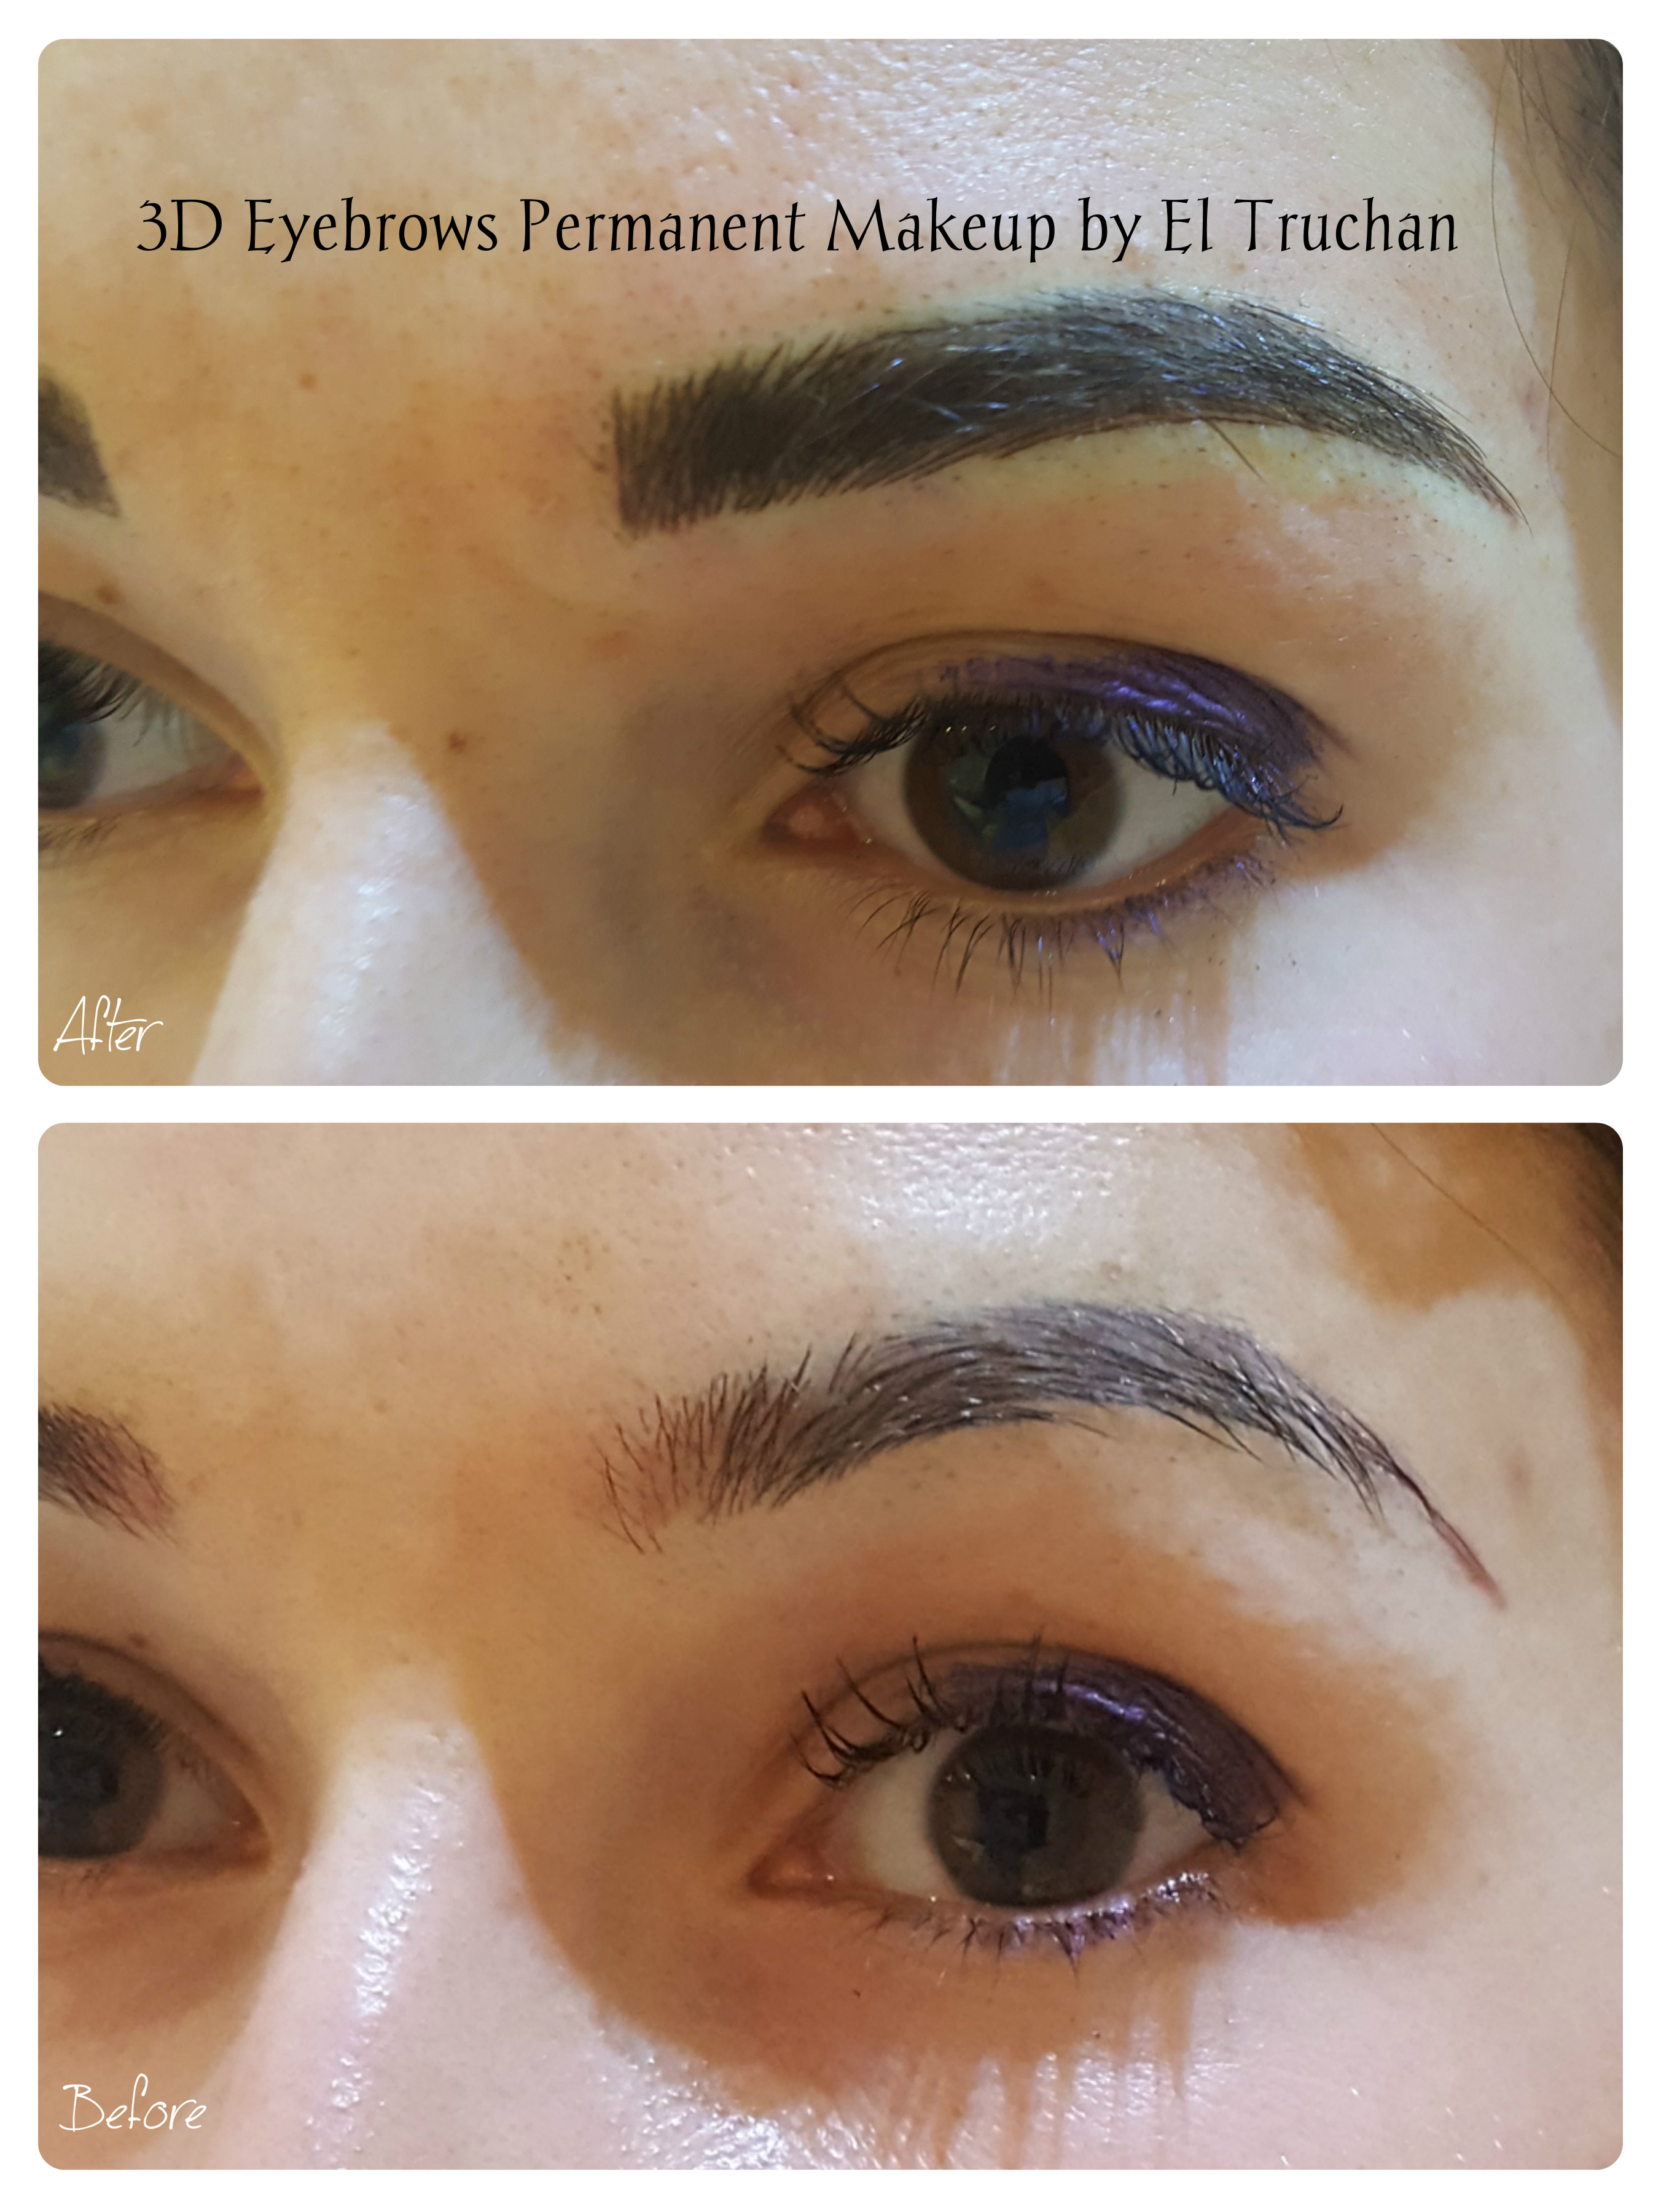 3d eyebrows pmu by el truchan UK